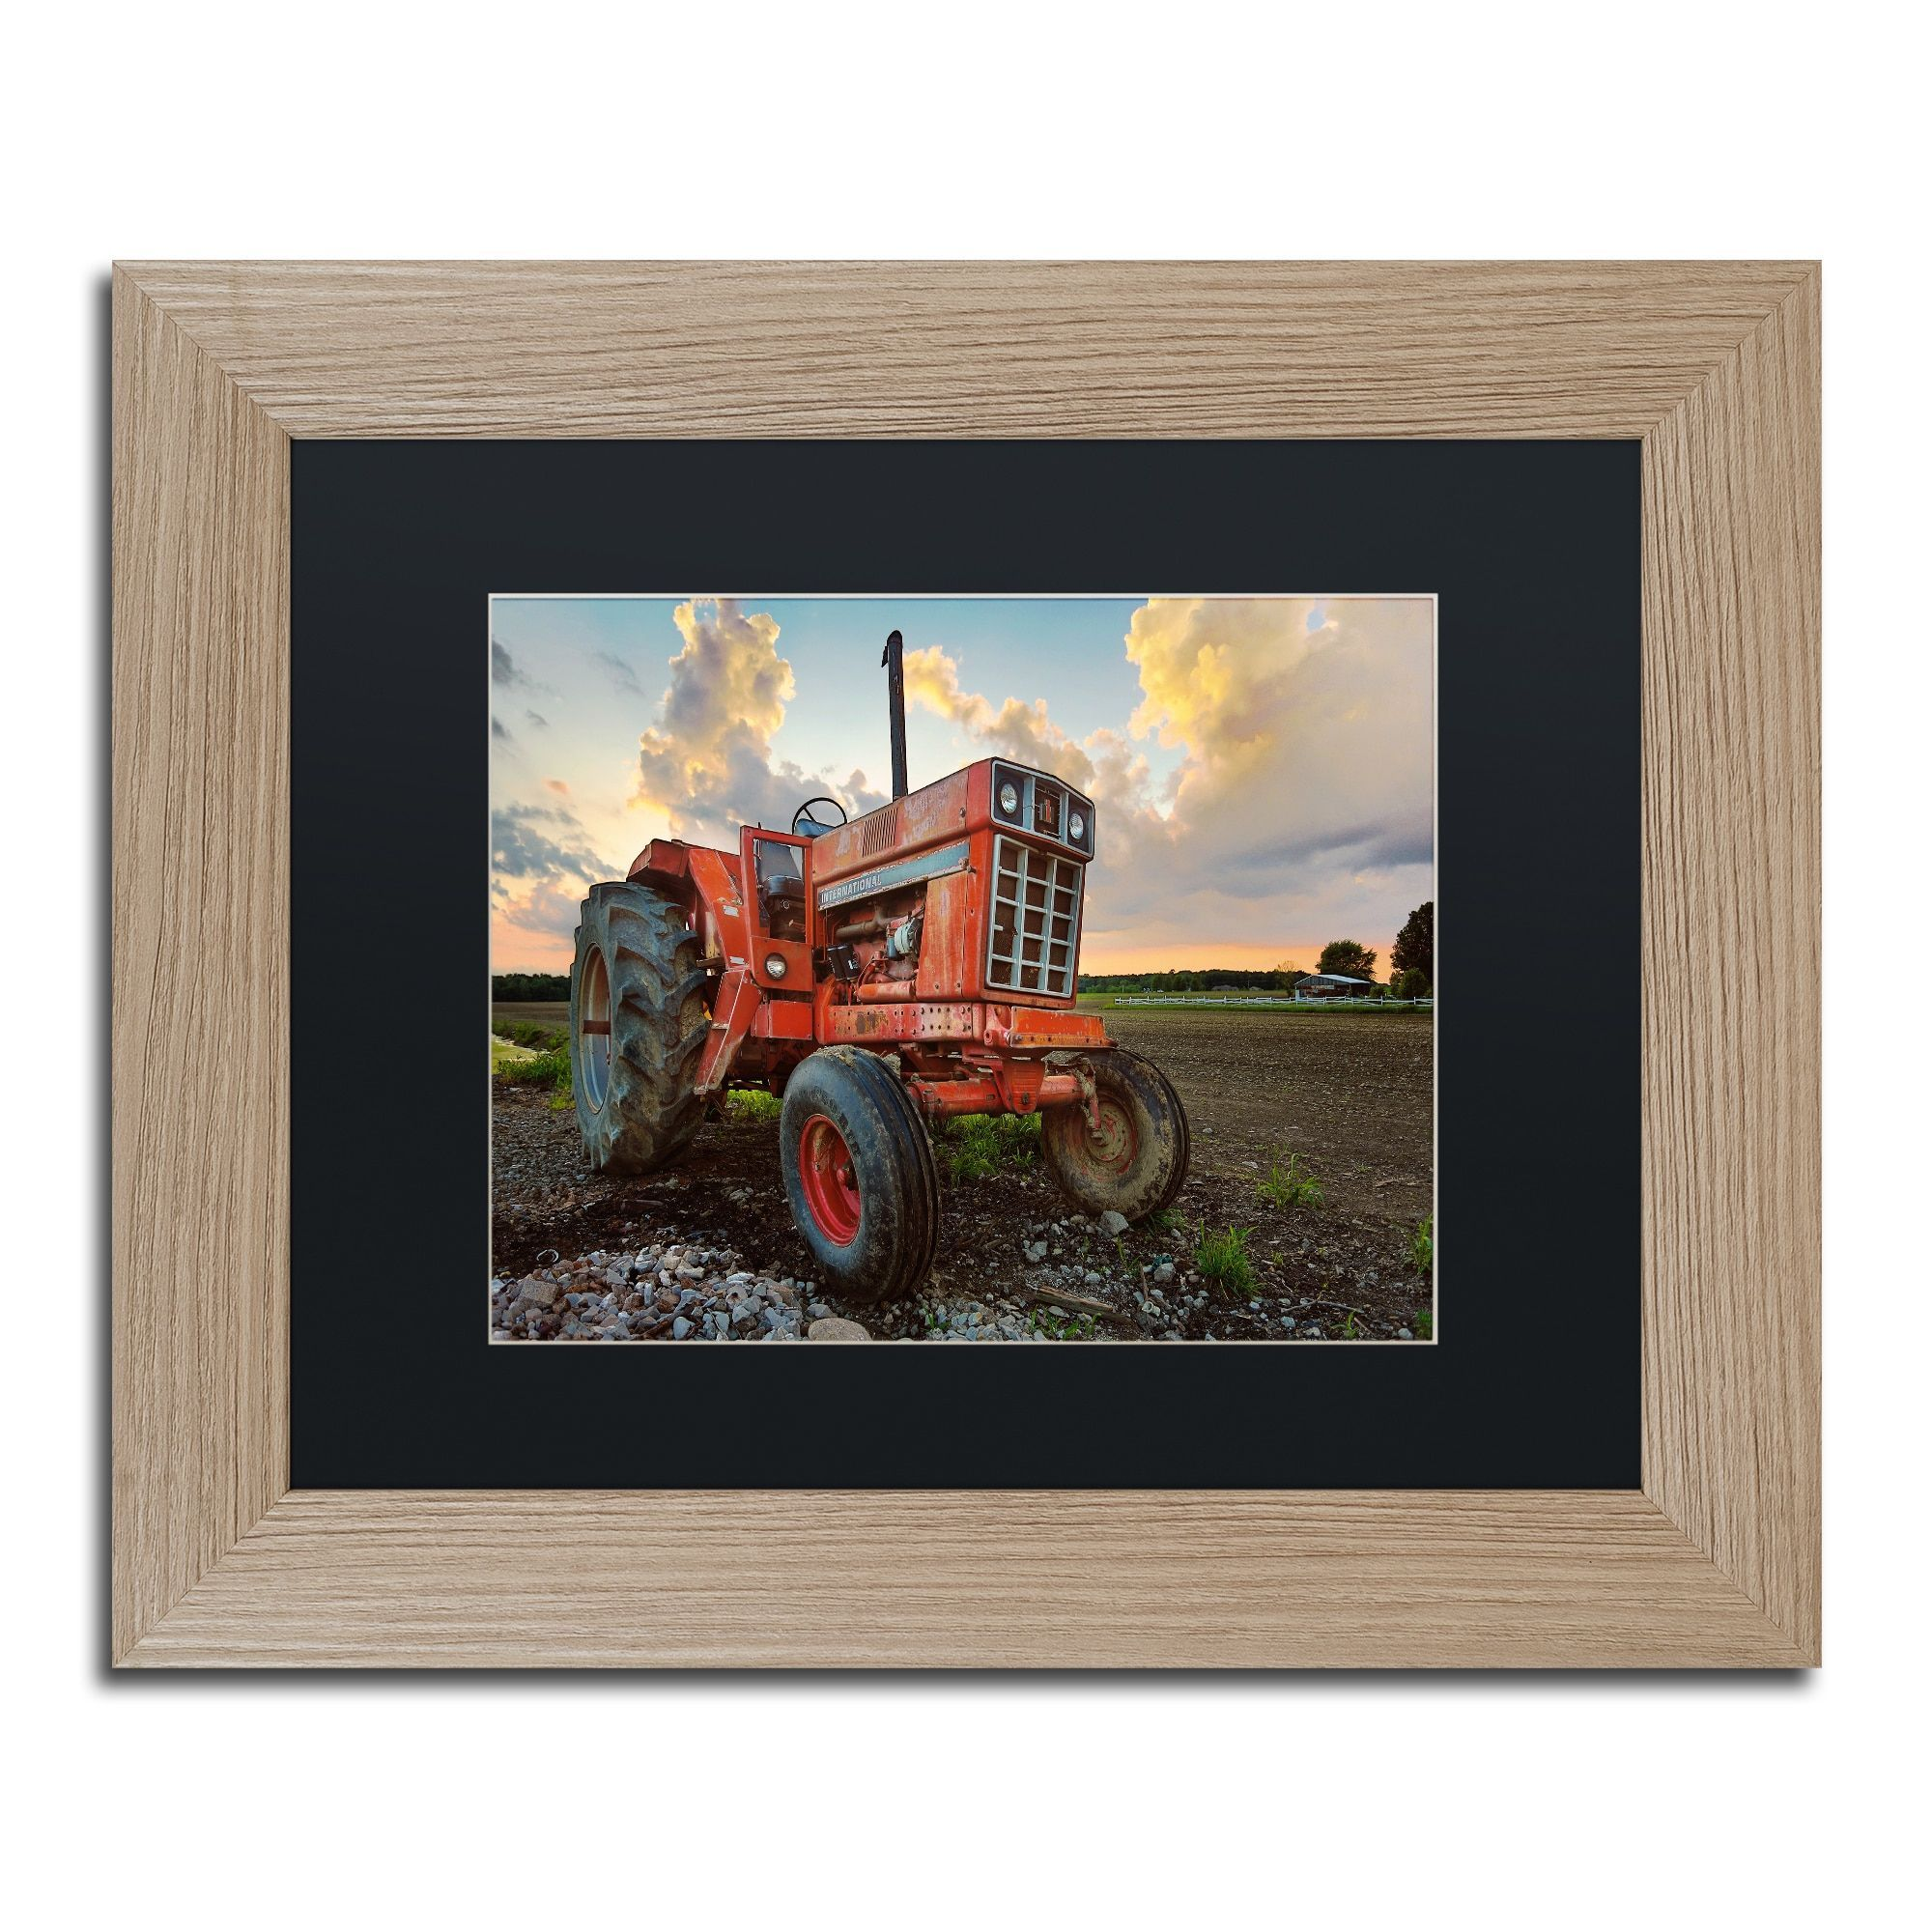 Jason Shaffer International Matted Framed Art Products